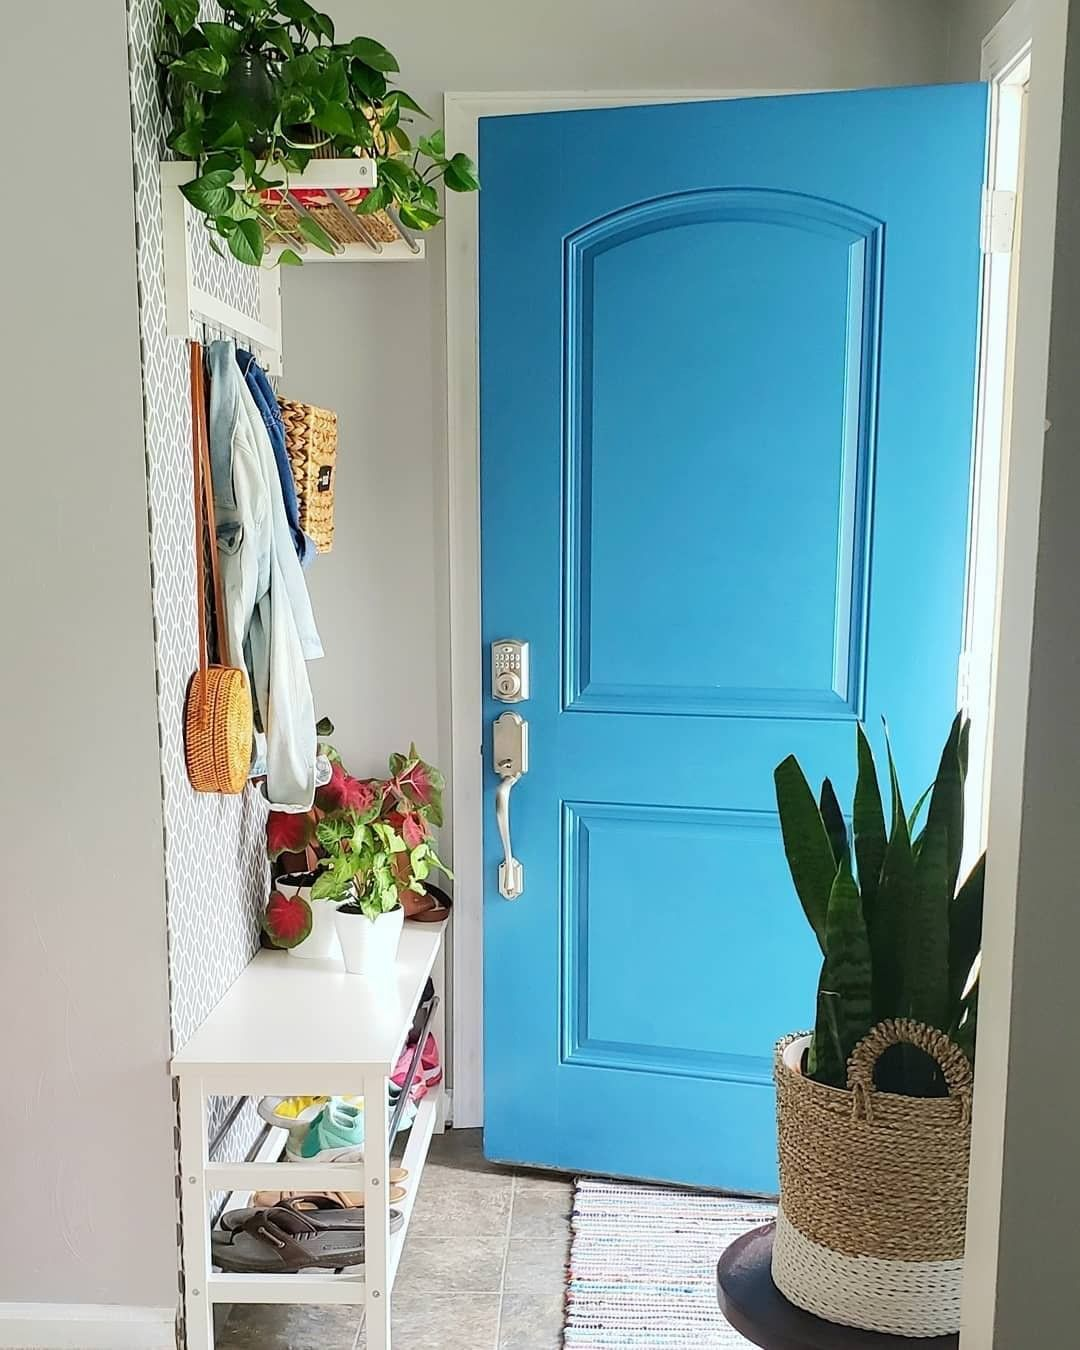 "Apartment Therapy on Instagram: ""We adore a bright door ..."